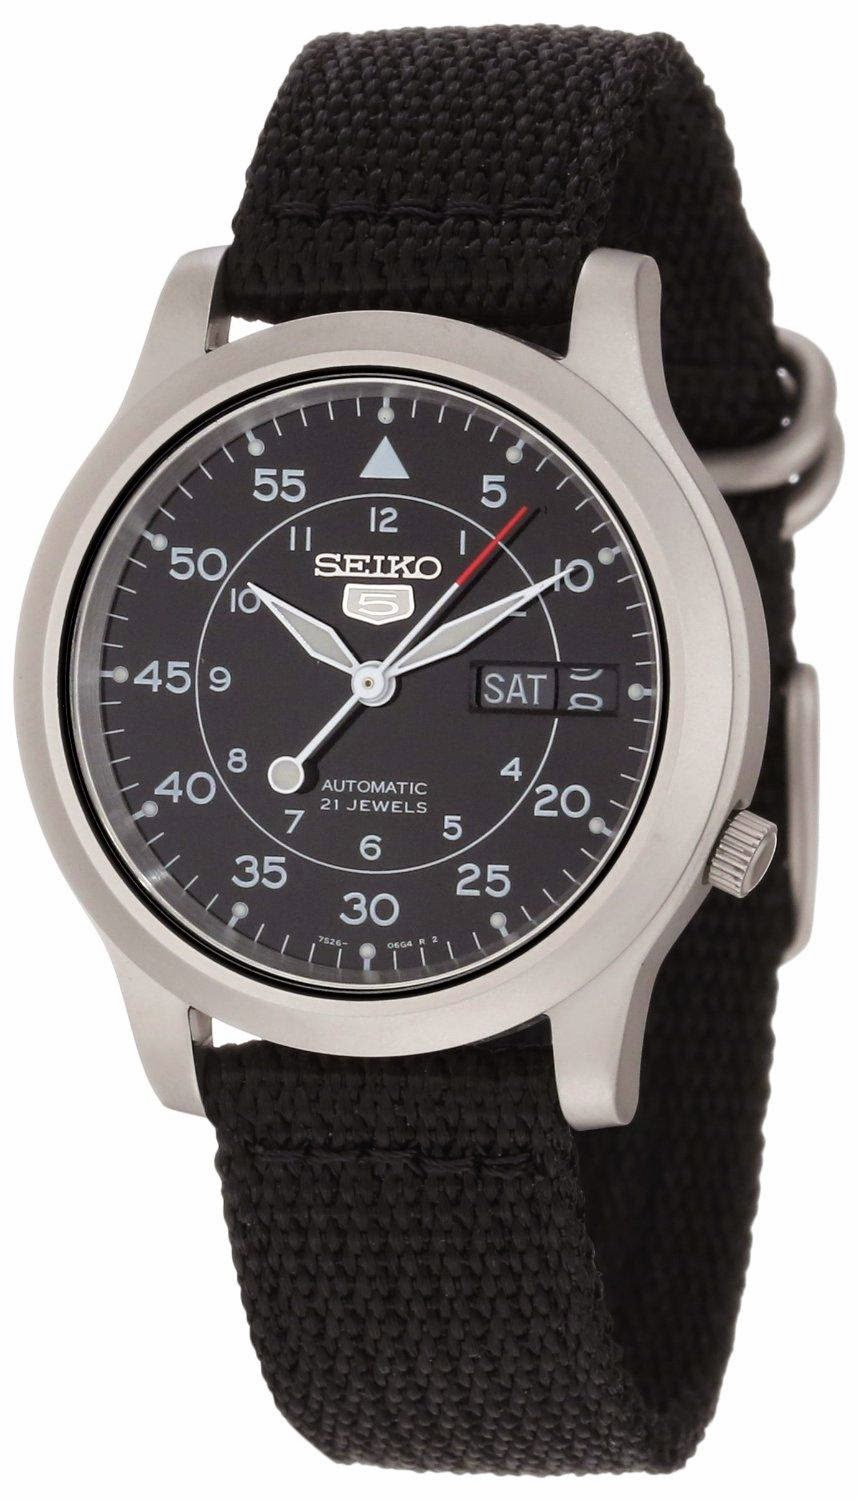 "Seiko Men's SNK809 ""Seiko 5"" Automatic Watch with Black Canvas Strap"